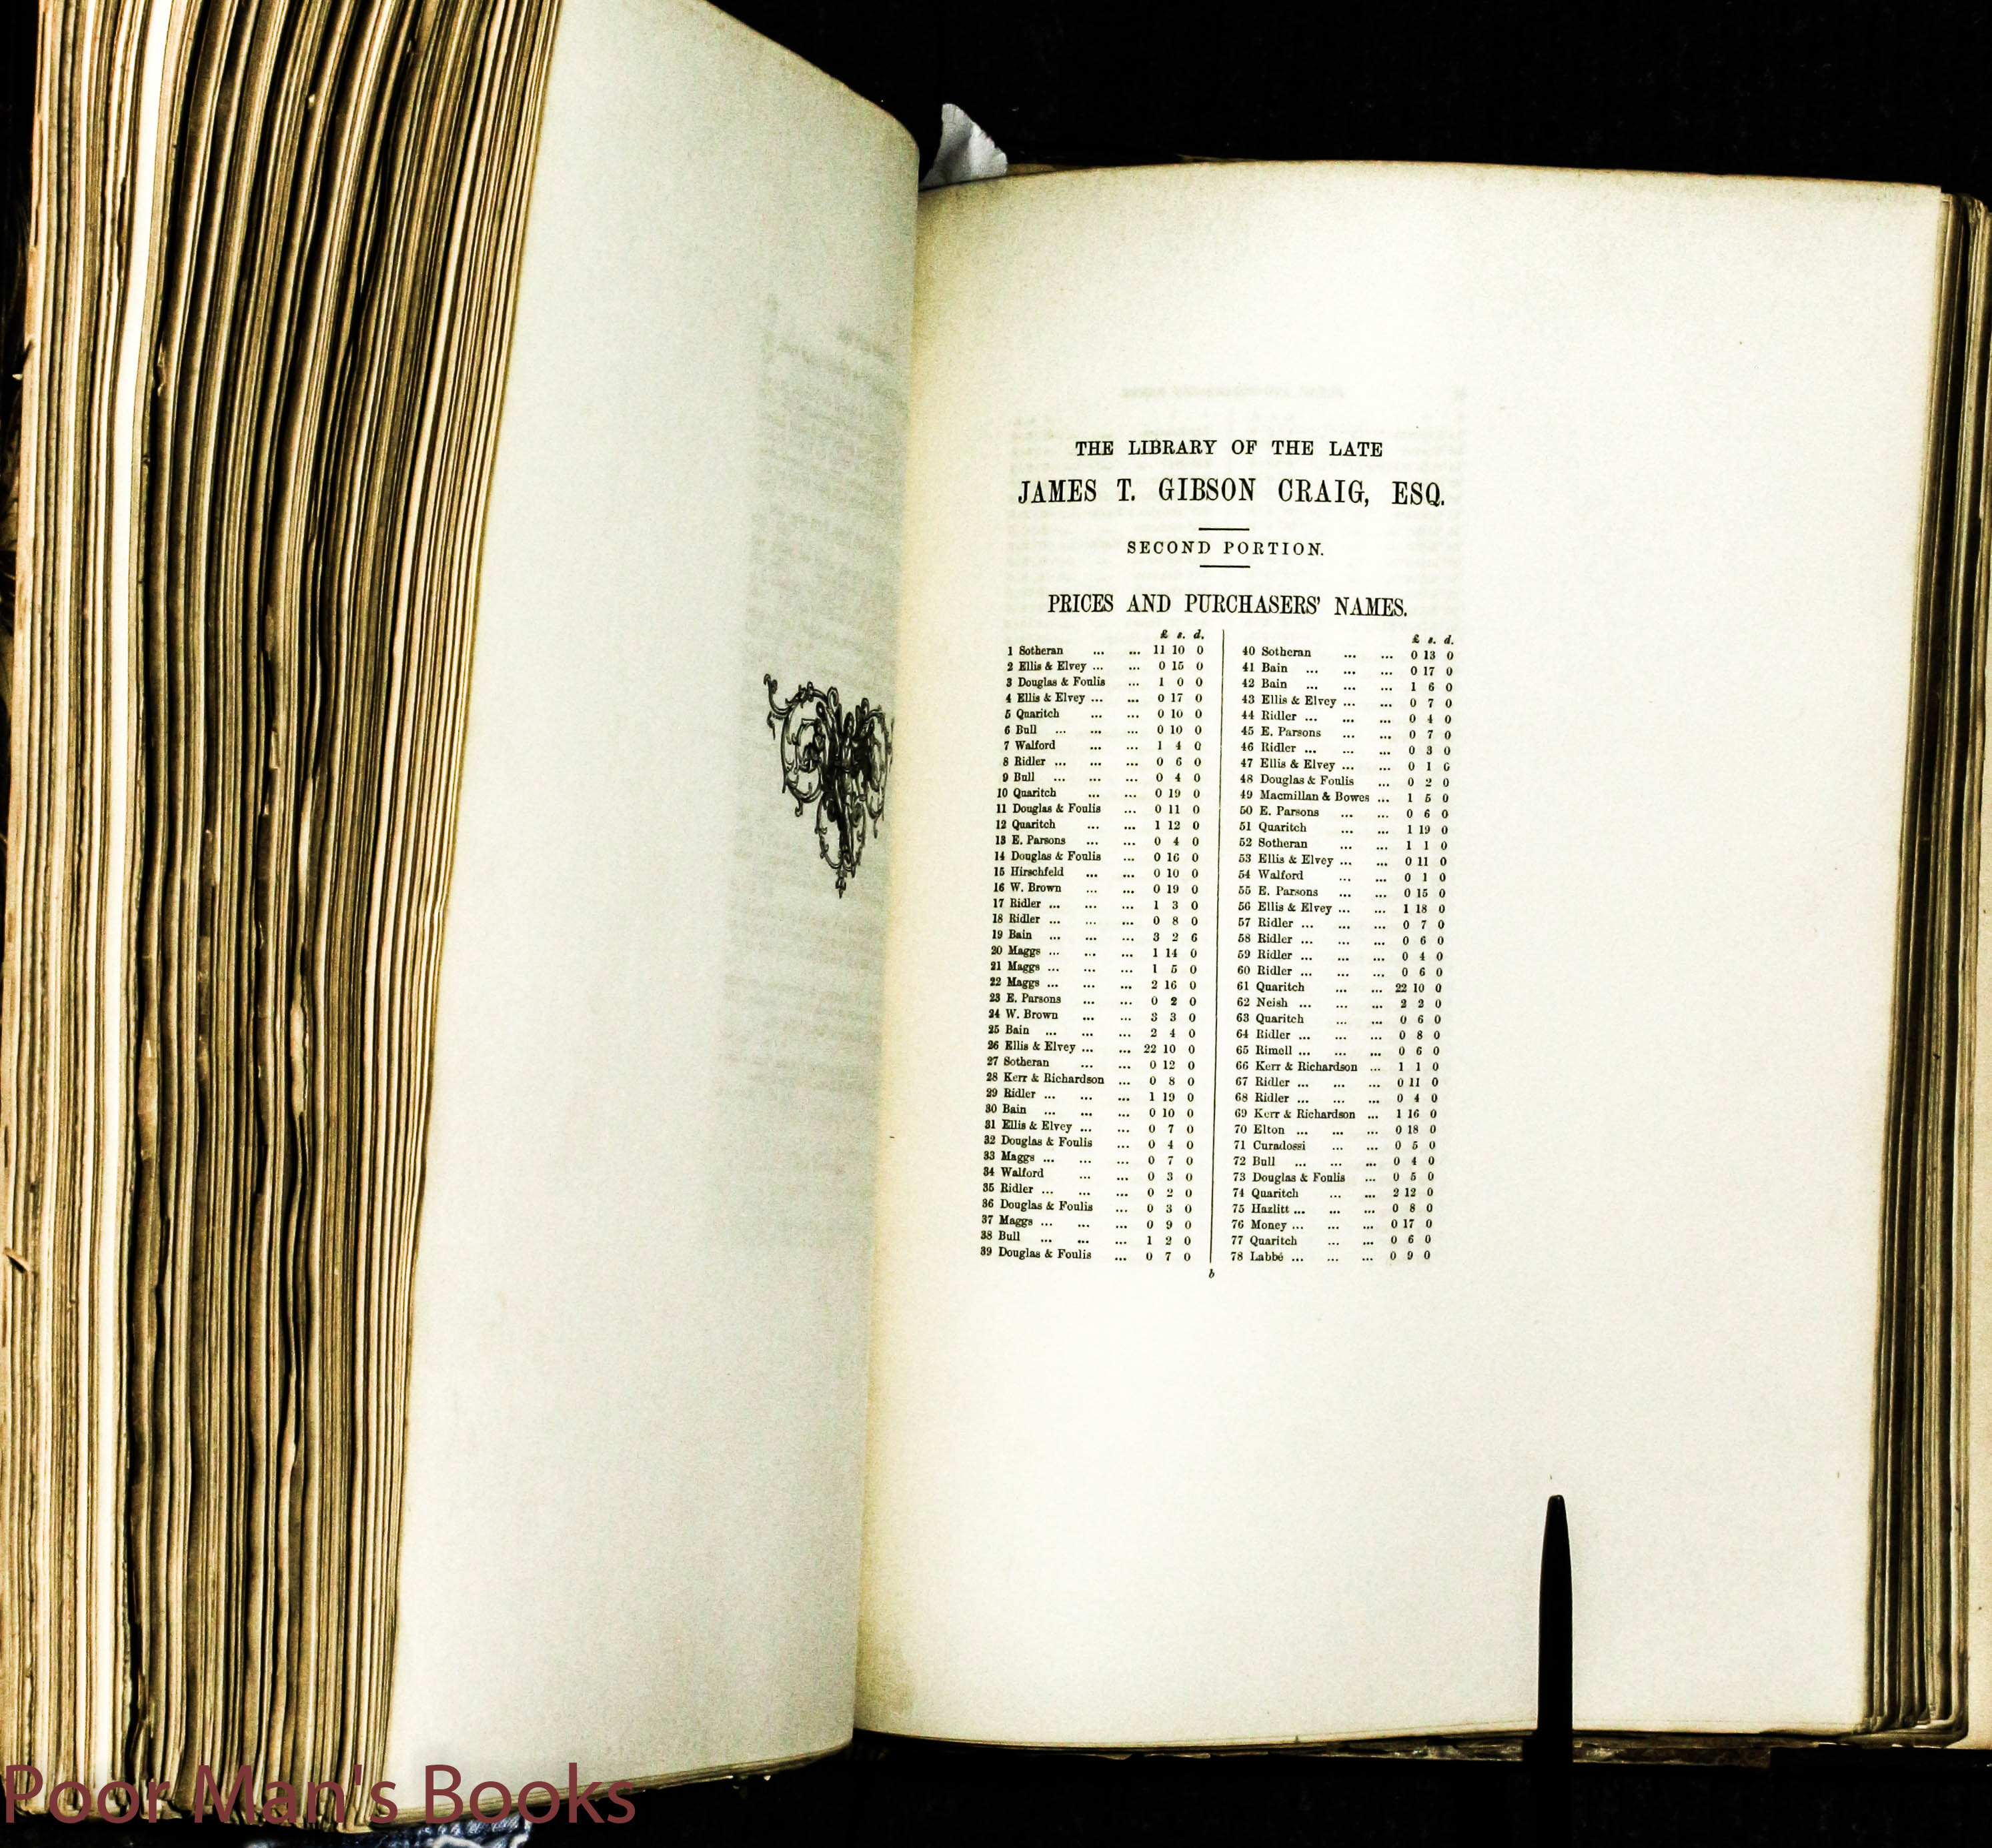 Image for The Gibson Craig Library, Catalogue Of The Valuable And Very Extensive Library Of The Late James T. Gibson Craig, Esq.3 Parts